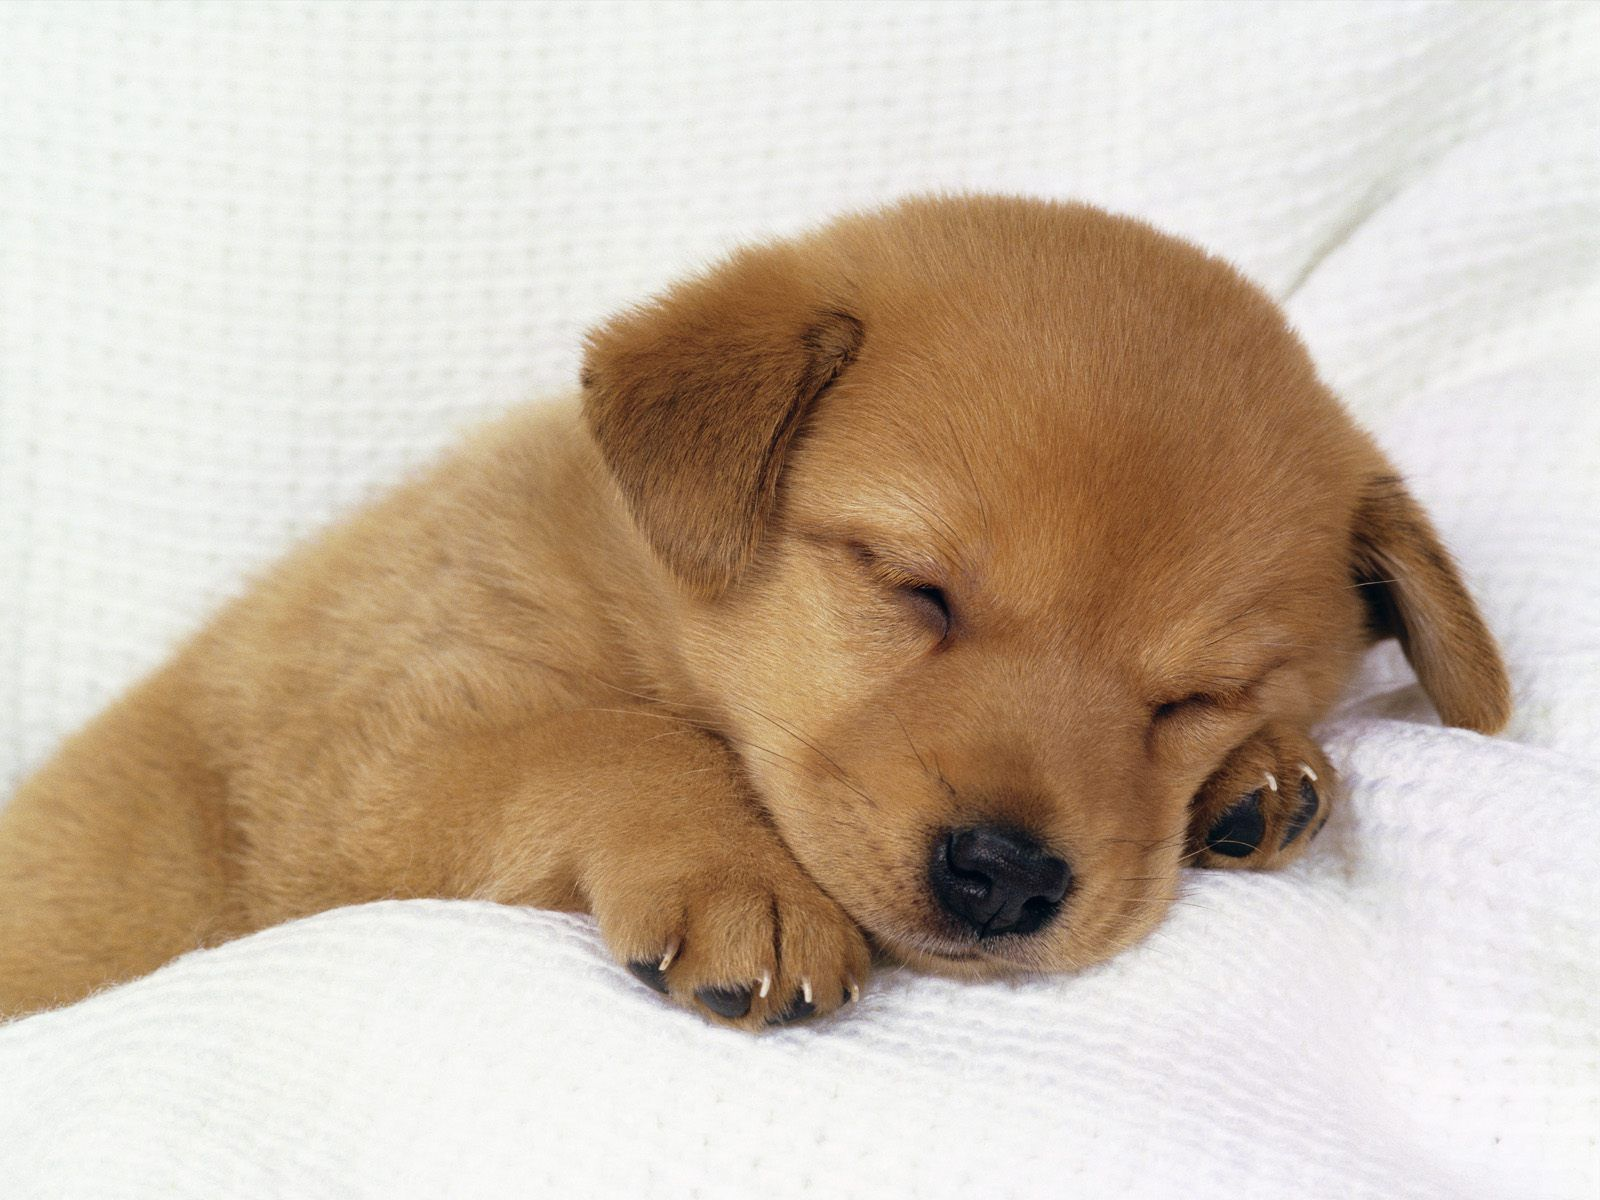 Oxstyle Puppy Dog Baby Animals Pictures Puppies Baby Dogs